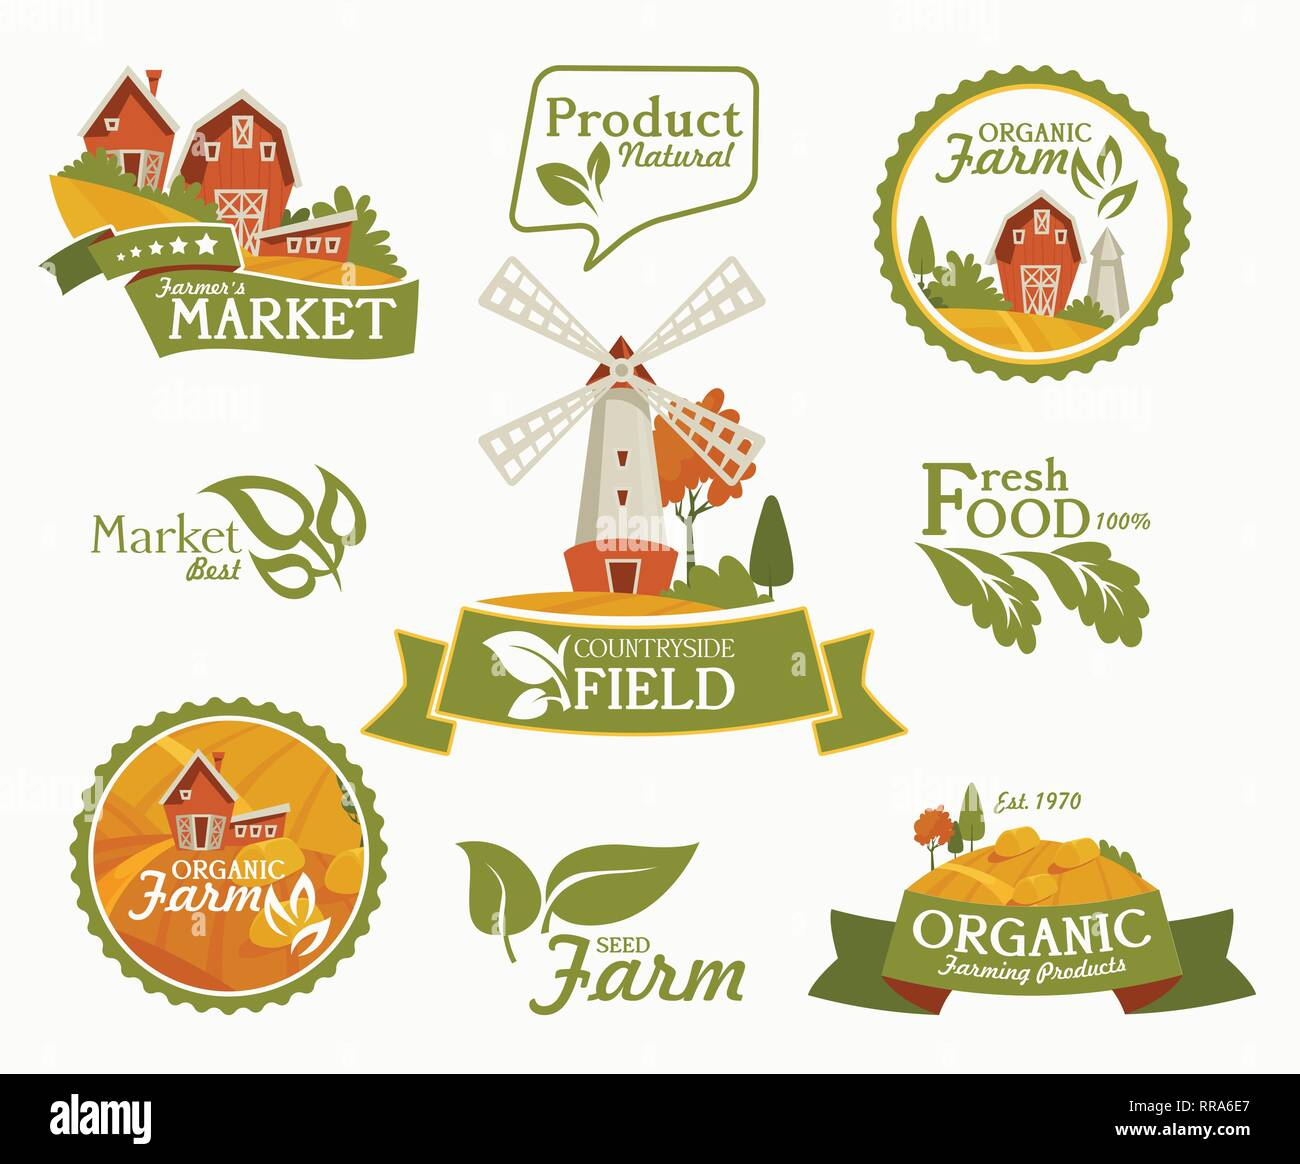 Farming landscape concept. Vector illustration with barn, houses and country yard. American farm in the summer. Poster of organic fresh food. - Stock Image